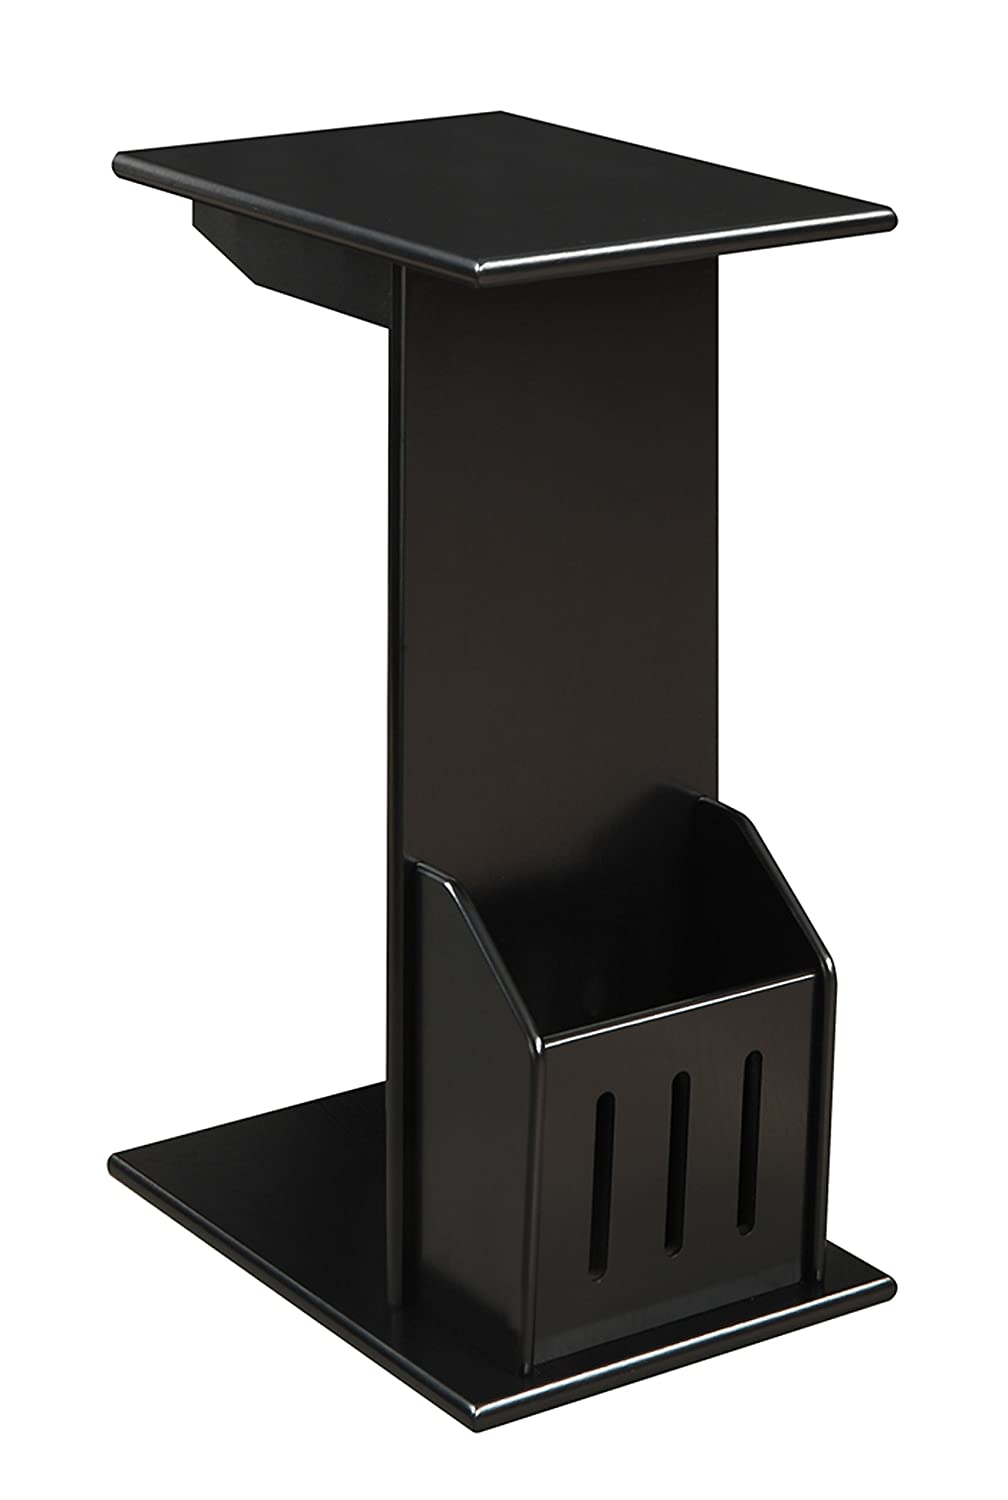 Convenience Concepts Abby Magazine C End Table, Black 7103022B